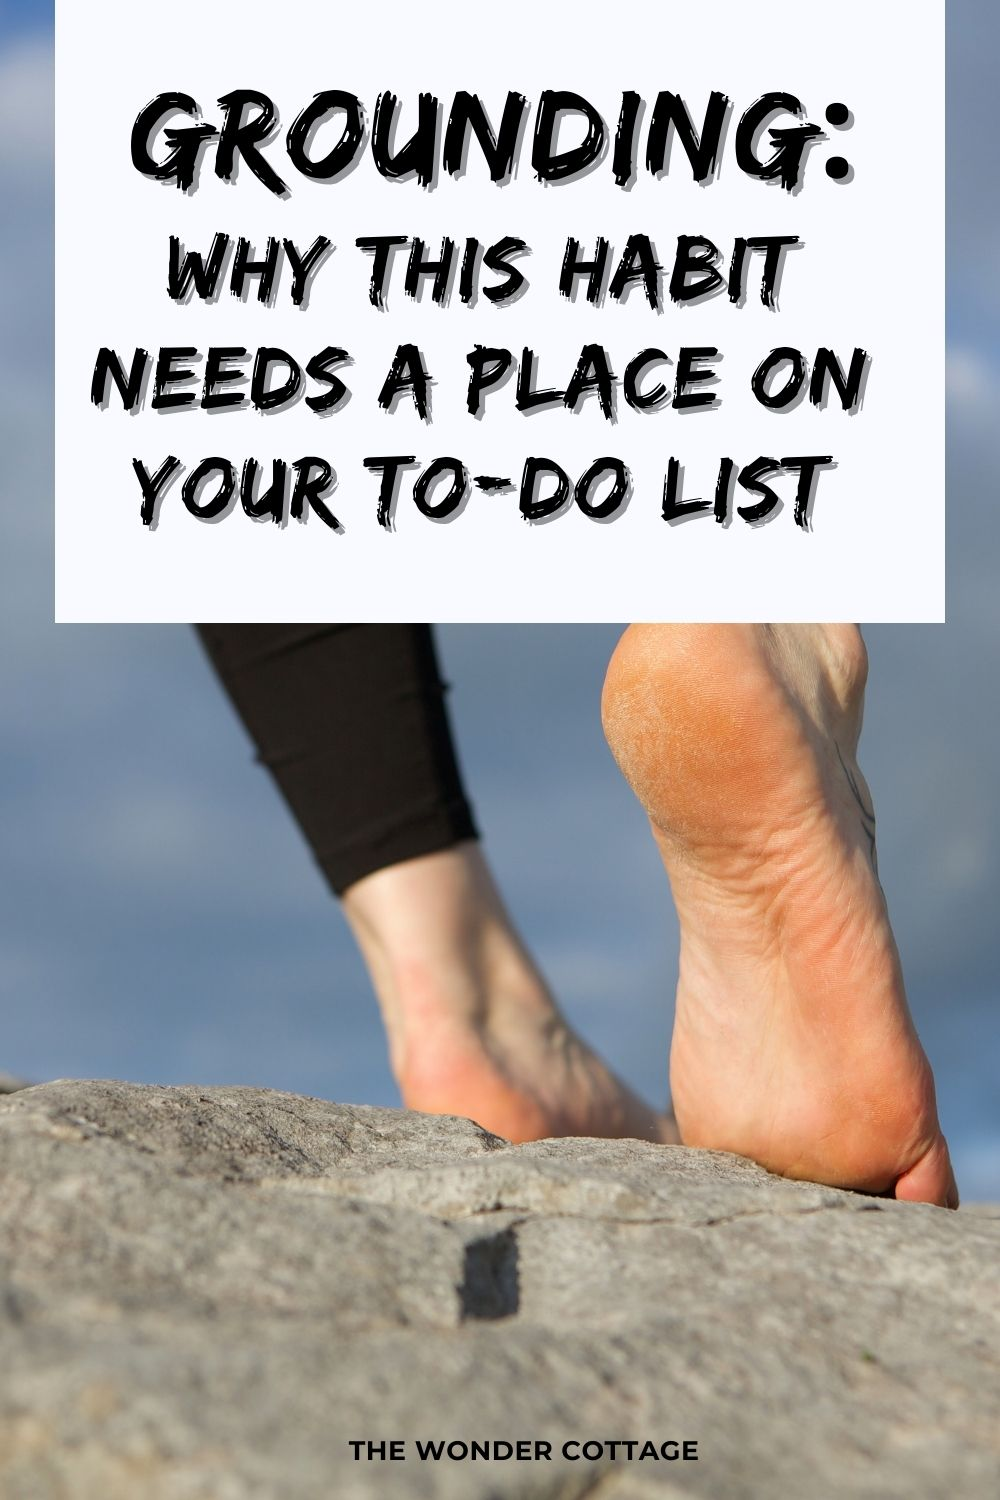 Grounding: Why This Habit Needs A Place On Your To-Do List